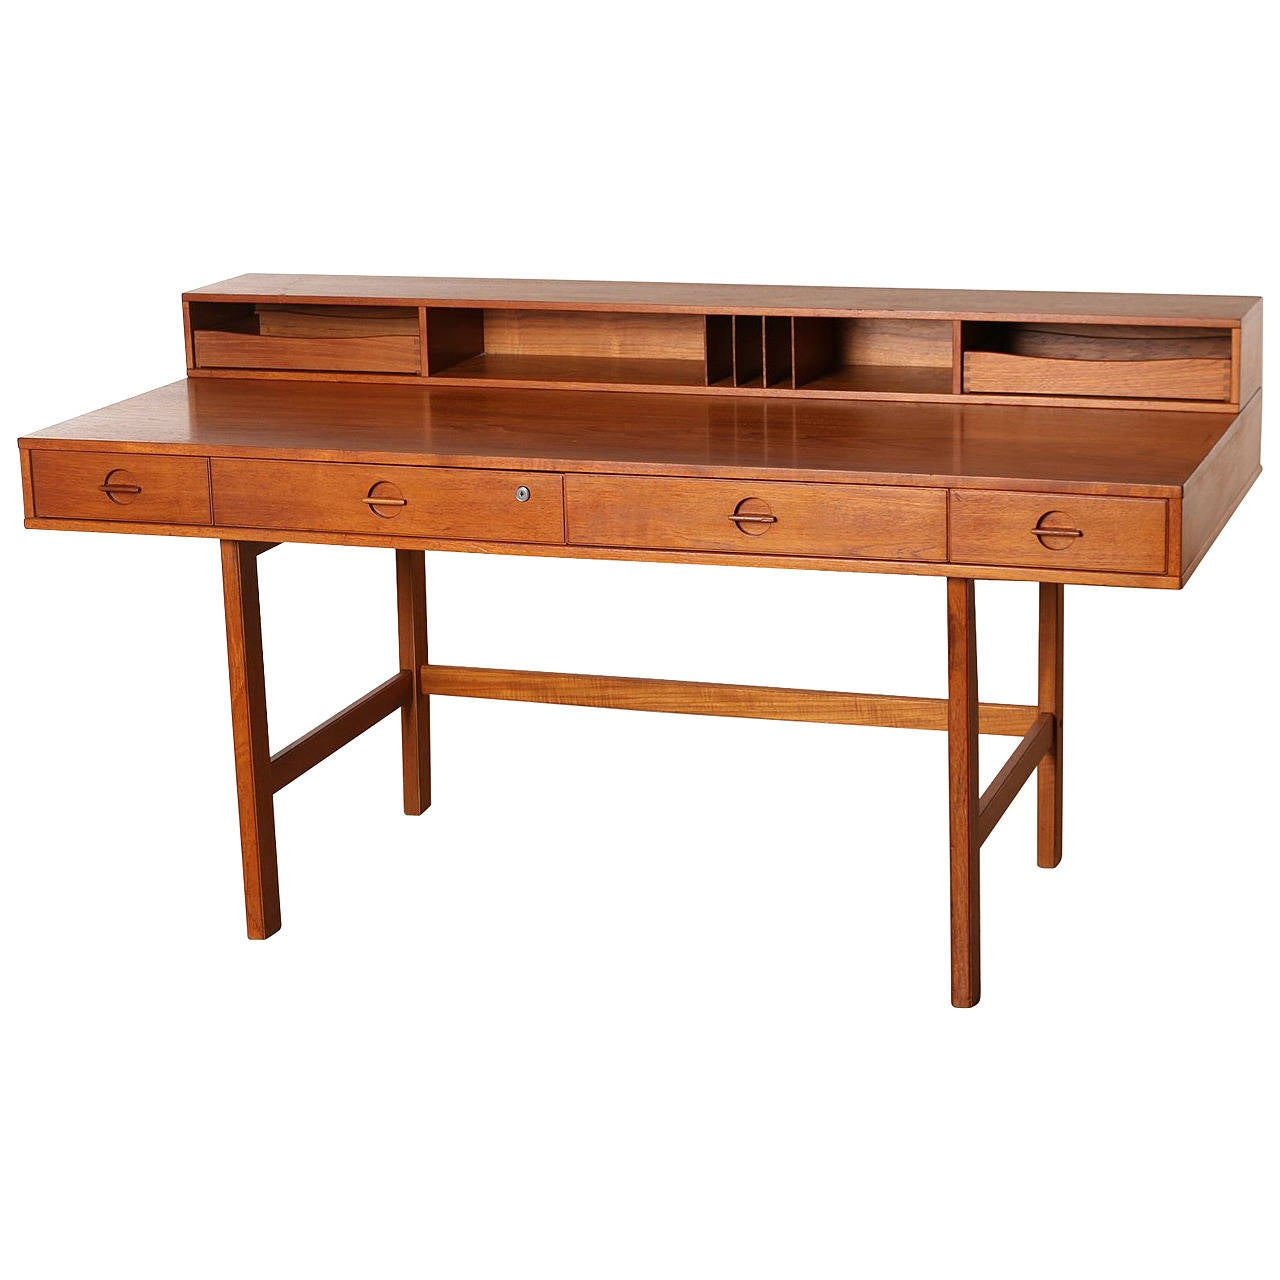 Teak Partners Desk By Jens Quistgaard For Peter Løvig Nielsen 1967 Denmark 1